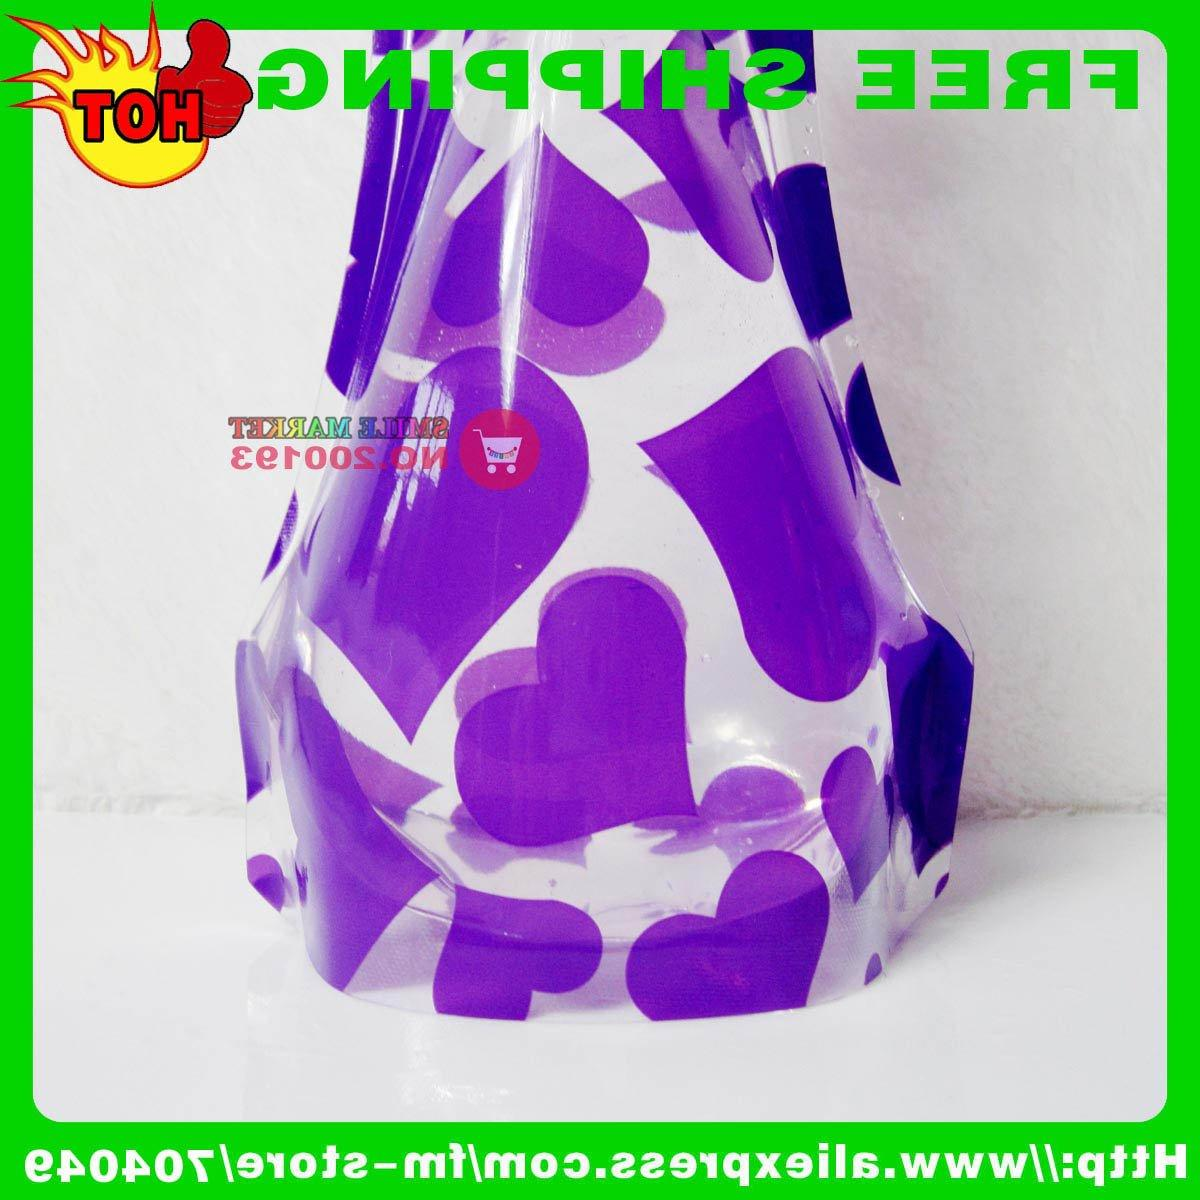 Buy 2011 INNOVATIVE WEDDING SOUVENIRS, INNOVATIVE WEDDING SOUVENIRS, WEDDING